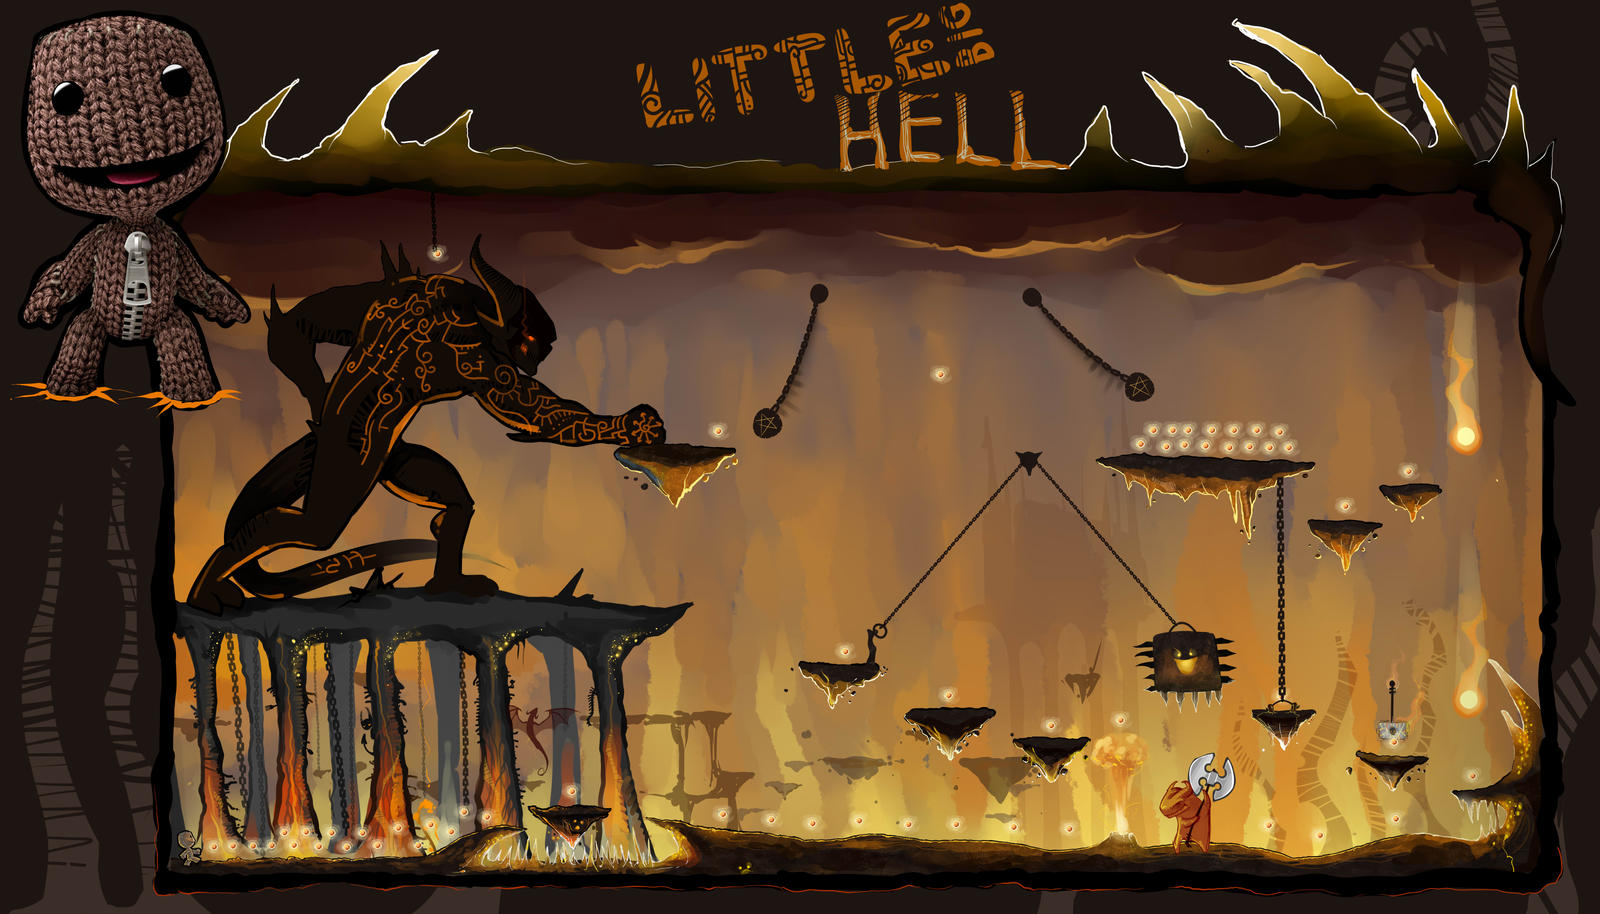 Little Big Hell by nightgrowler